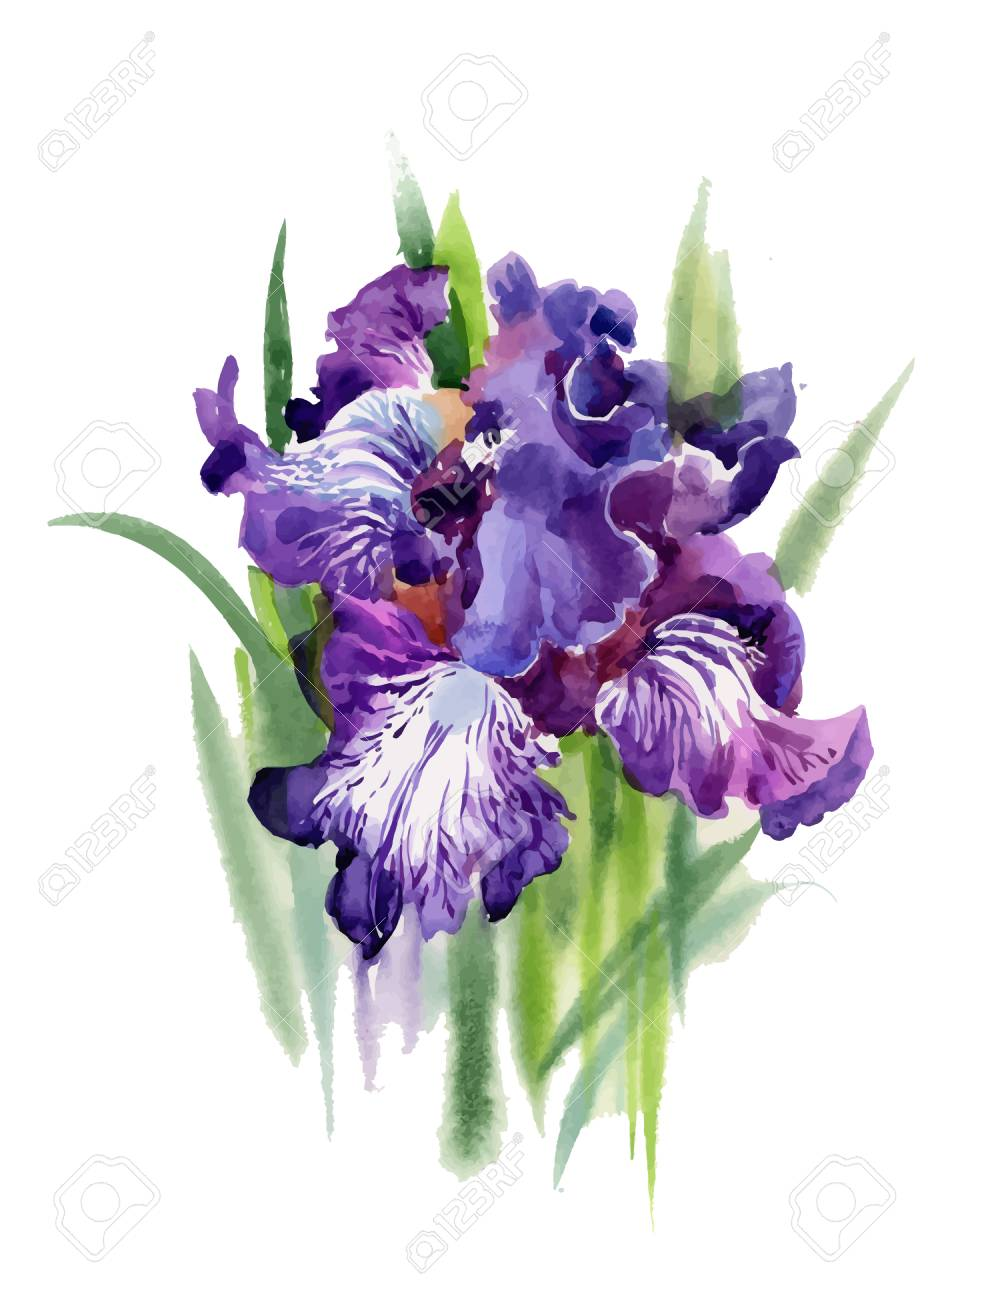 Watercolor blooming iris flowers illustration royalty free cliparts vector watercolor blooming iris flowers illustration izmirmasajfo